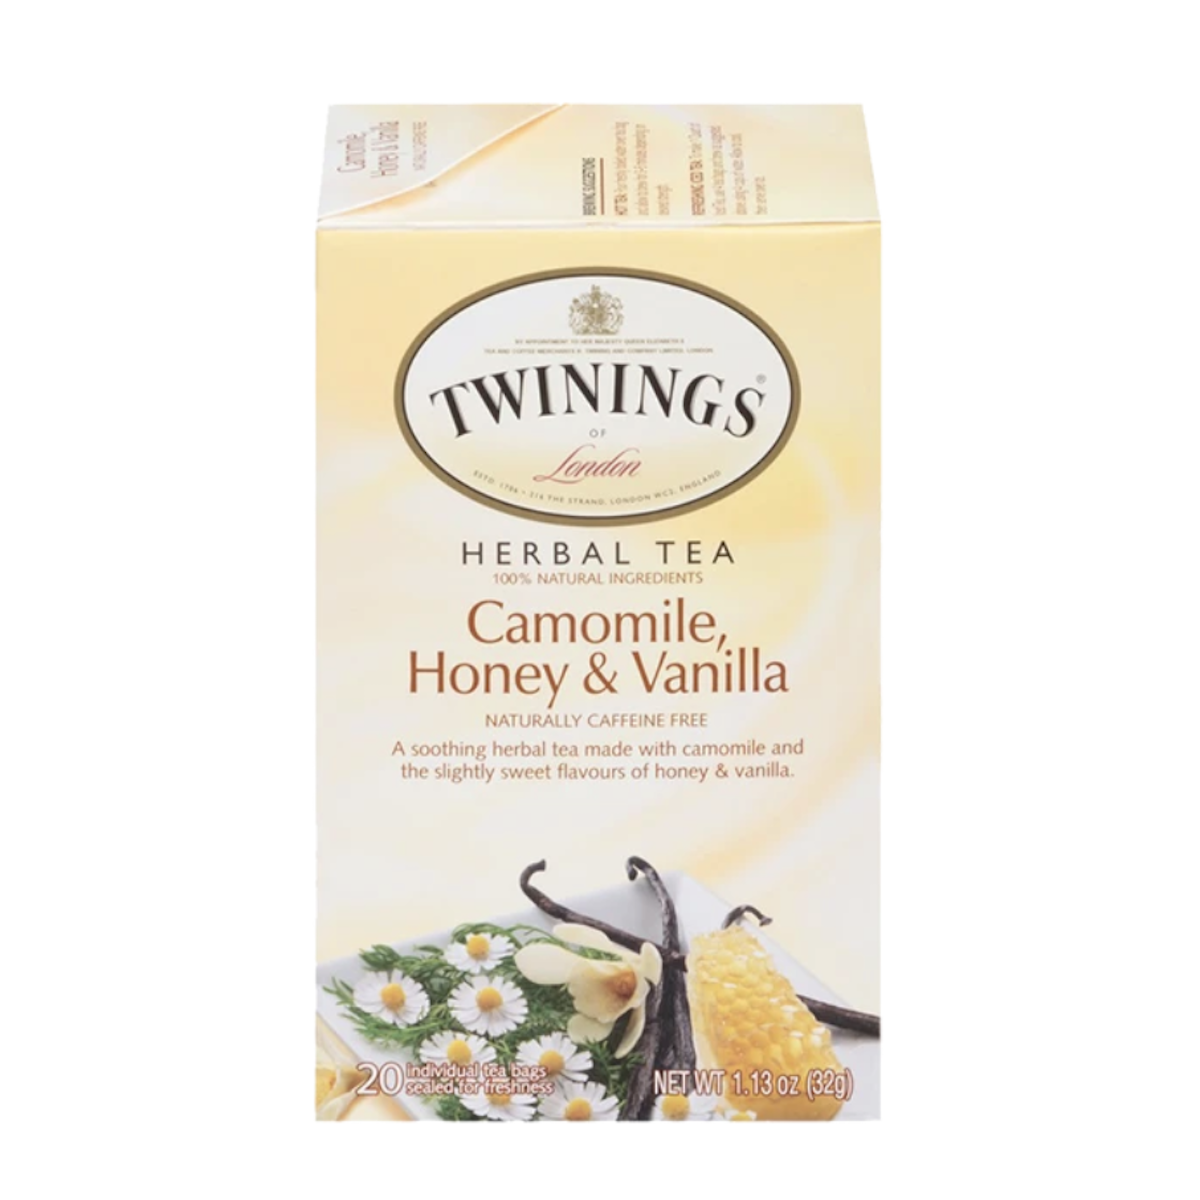 Twinings, Camomile, Honey & Vanilla Herbal Tea